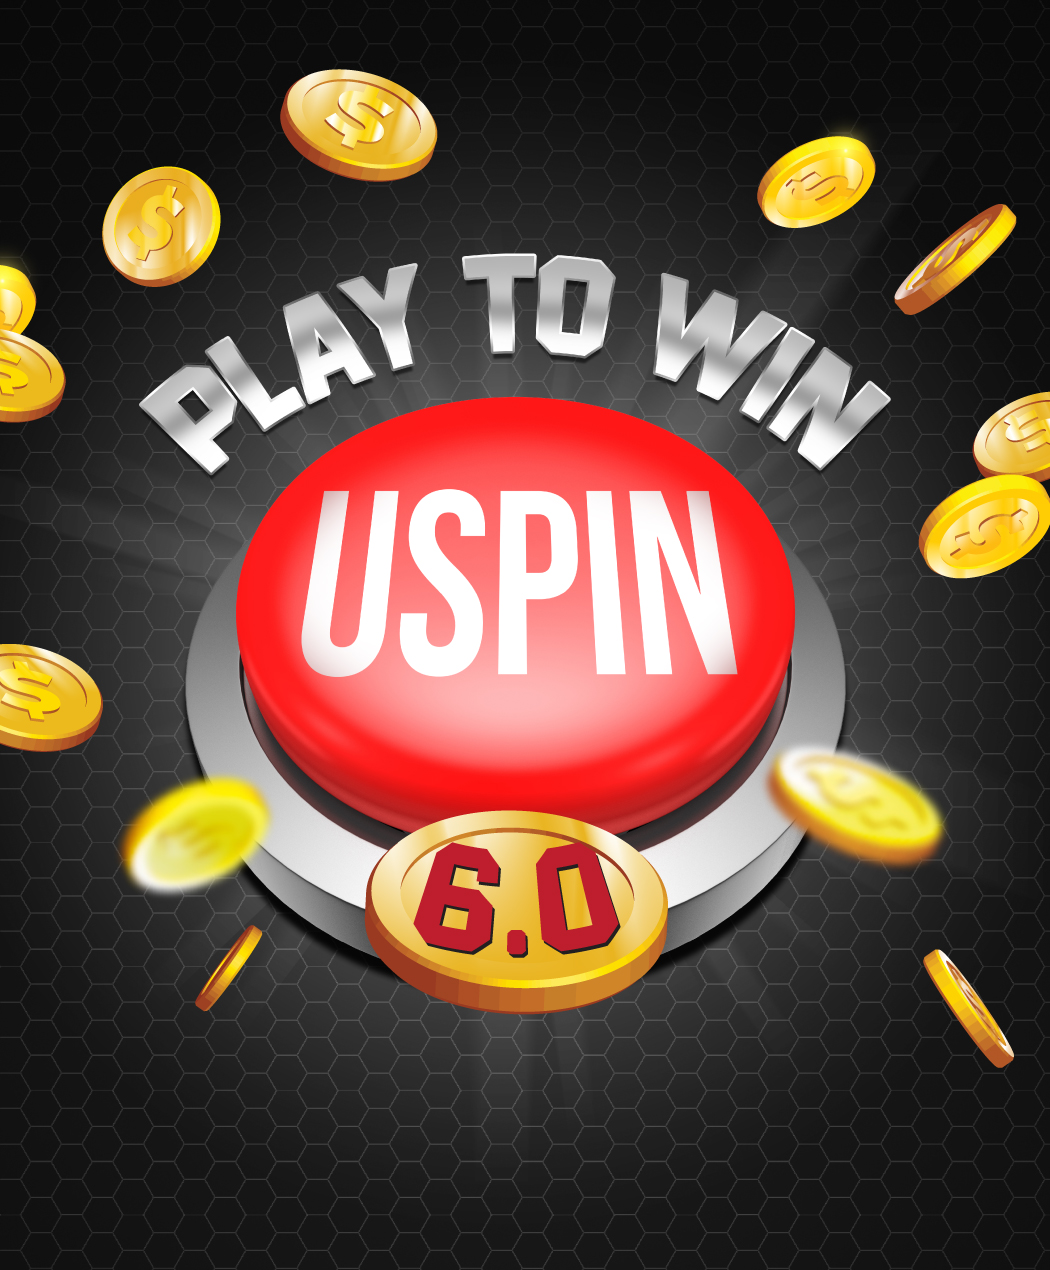 Play to Win U-Spin 6.0